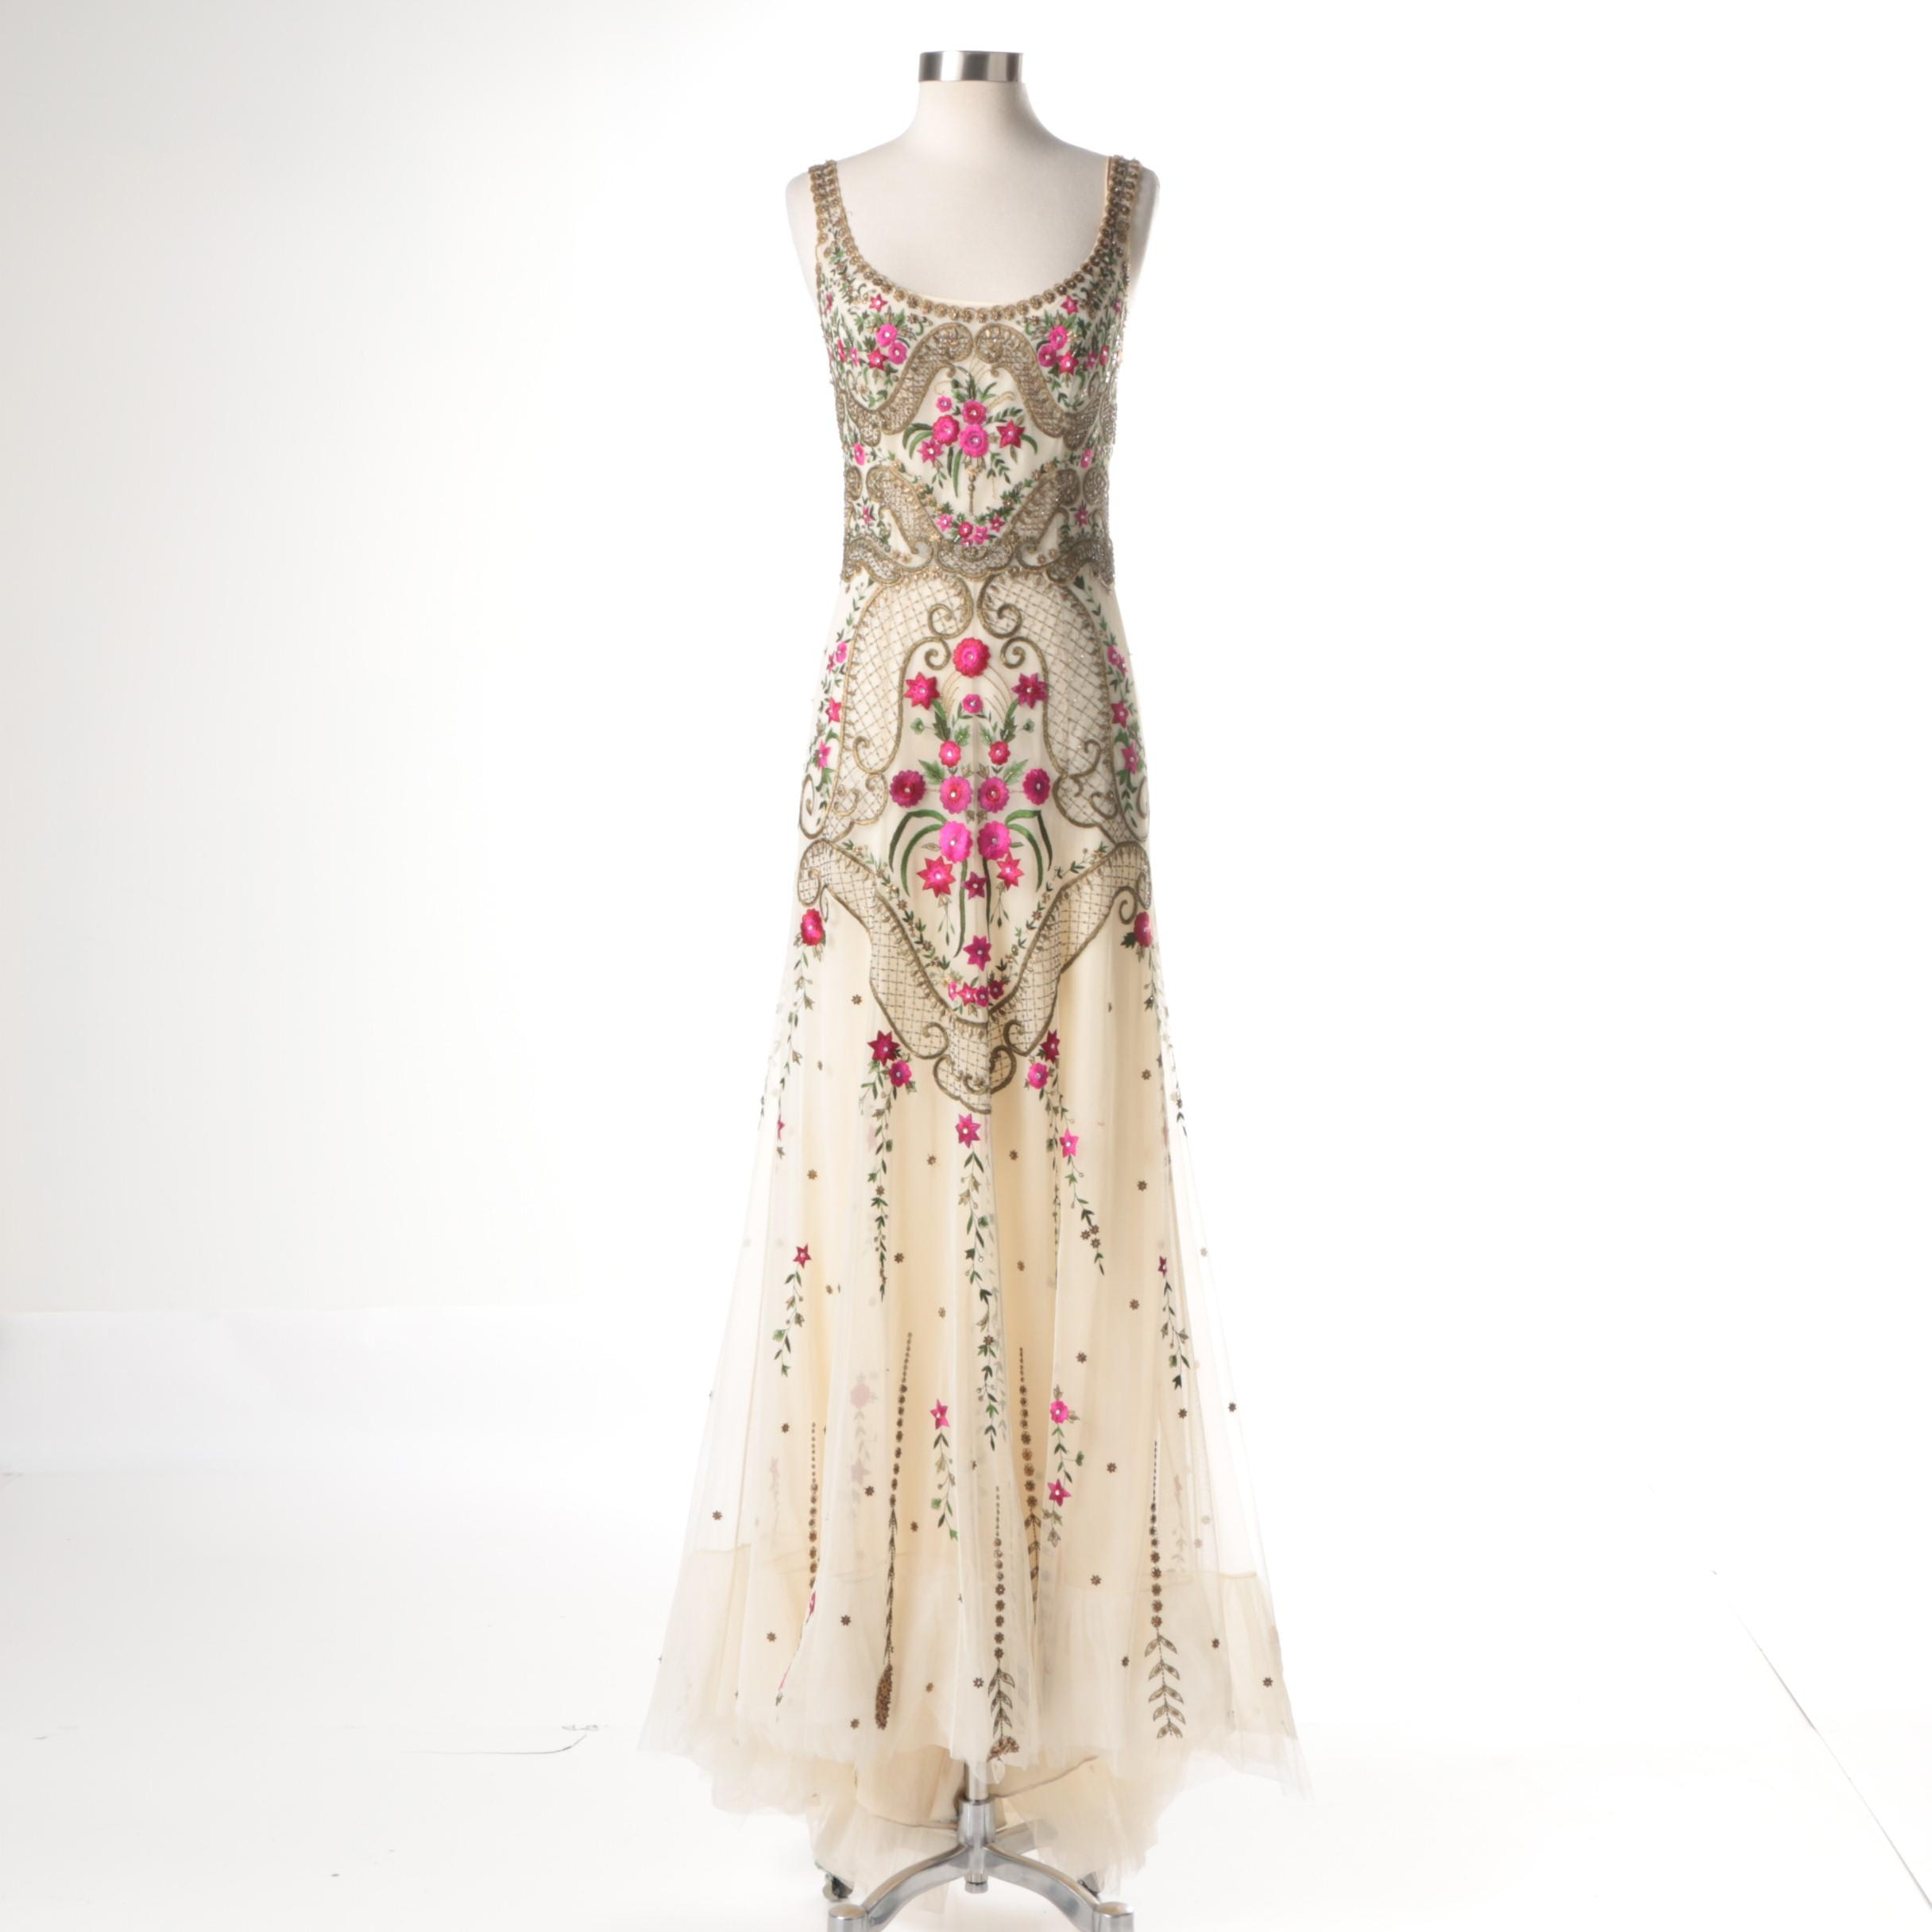 Reem Acra Beaded and Floral Embroidered Floor Length Gown